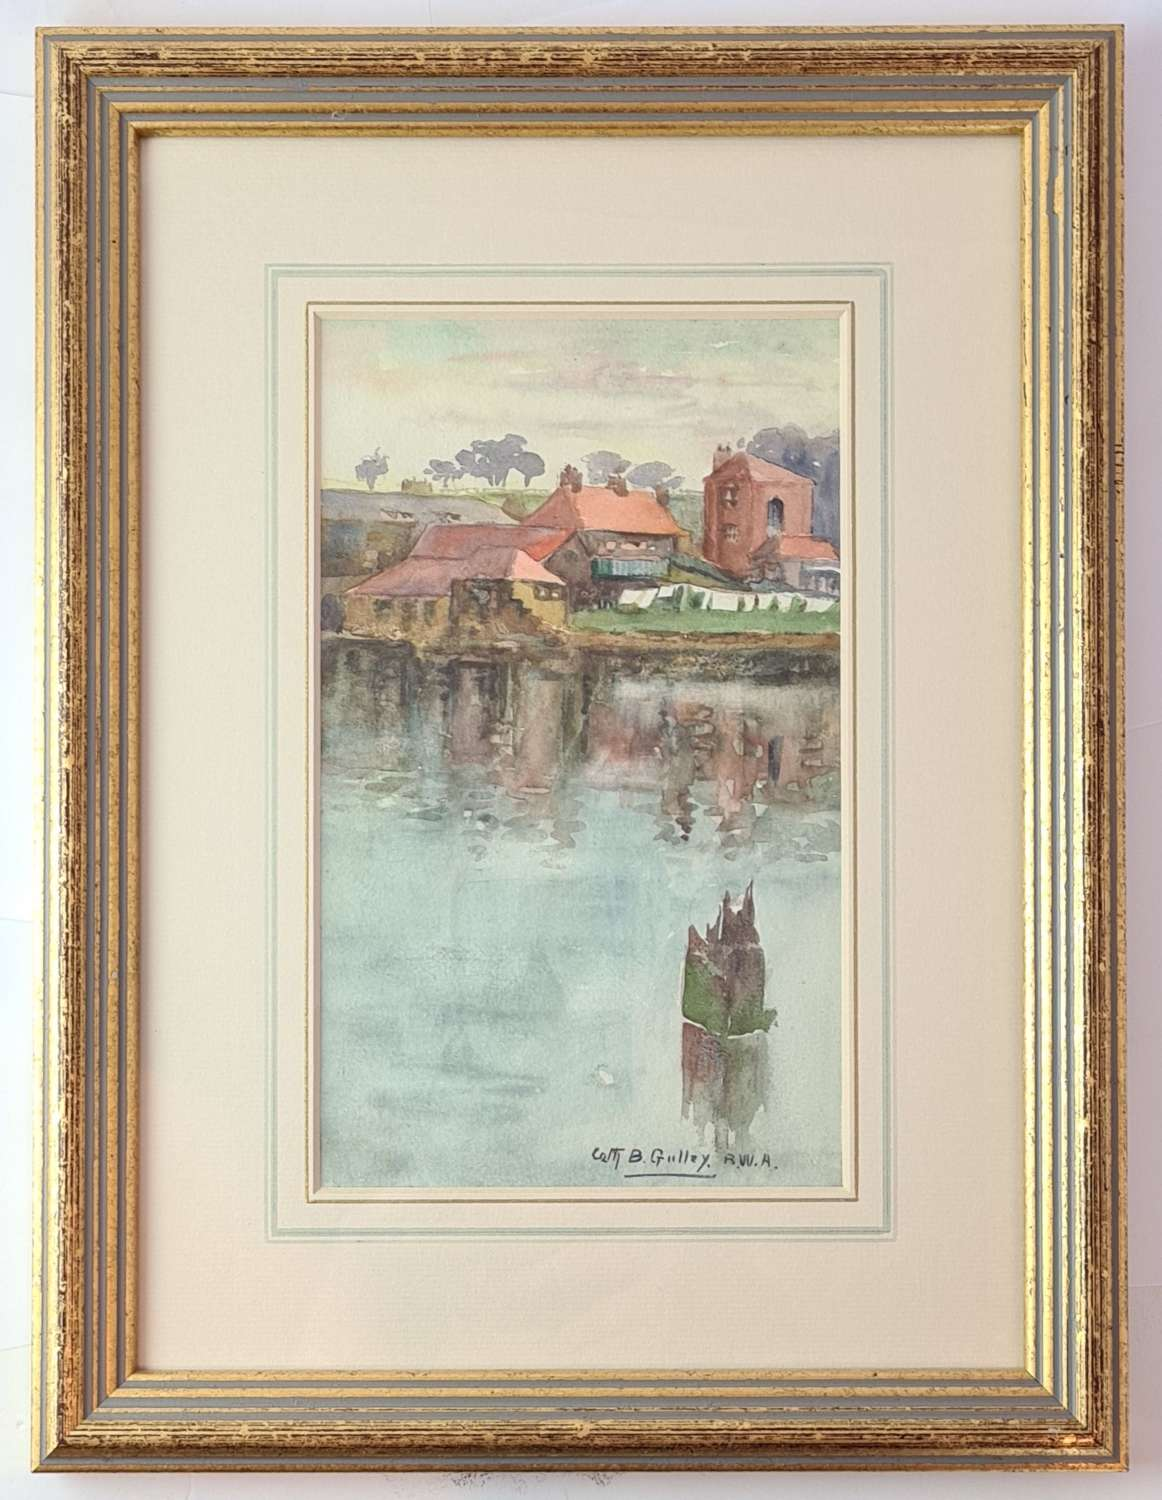 Watercolour by Catherine B. Gulley R.W.A.